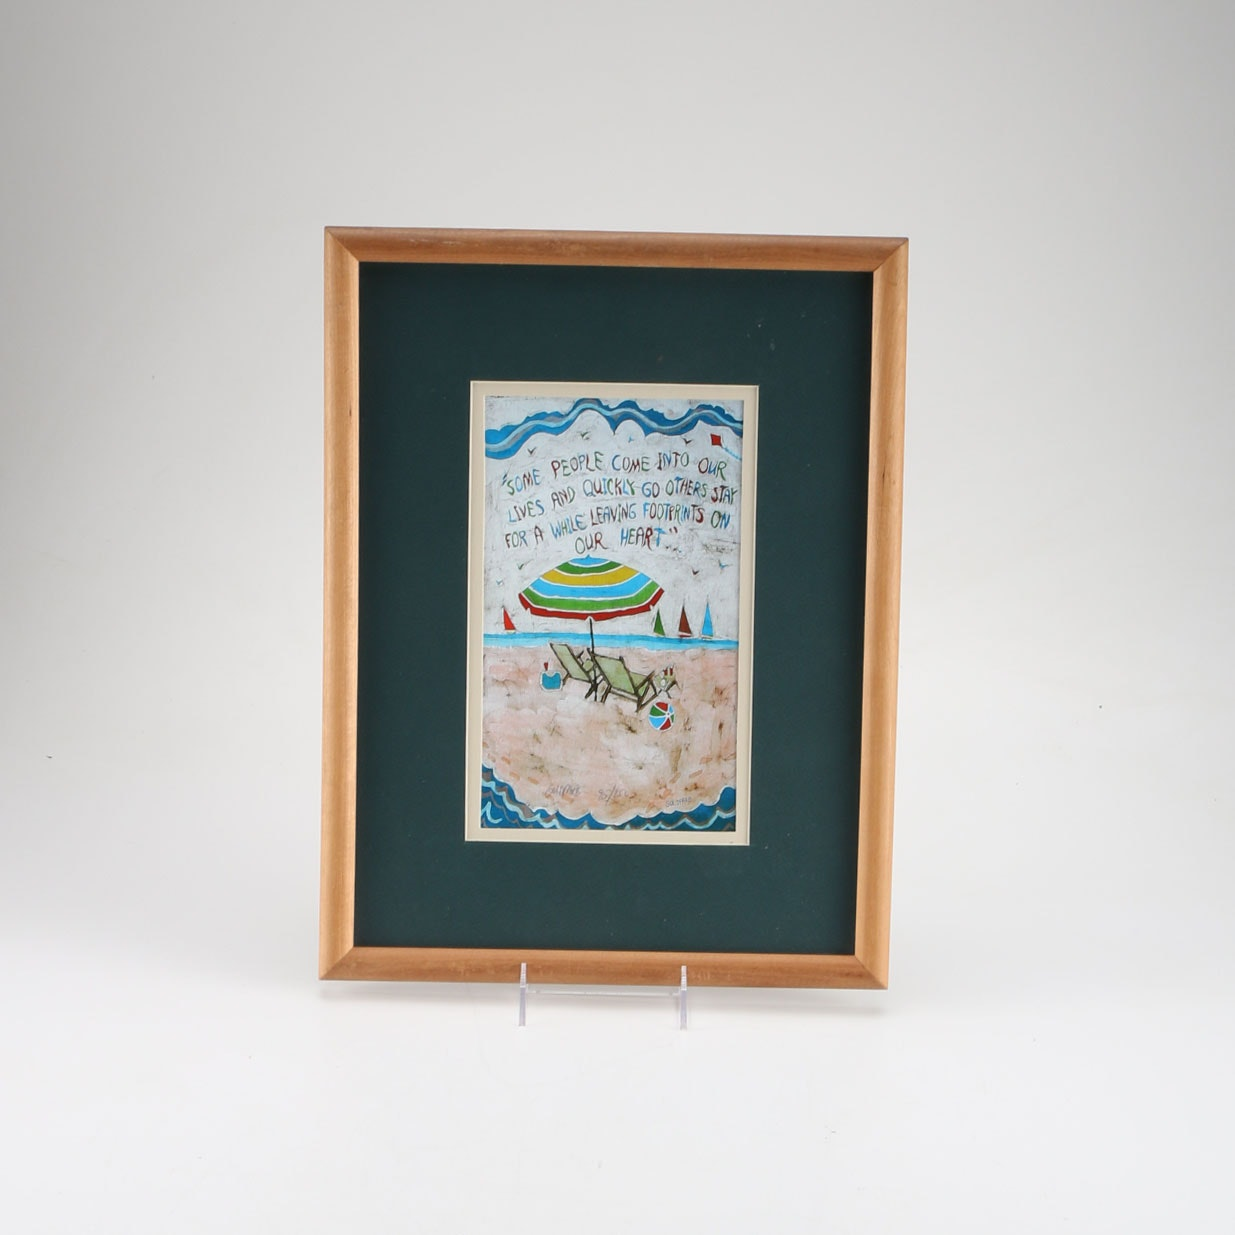 Goldfarb Limited Edition Offset Lithograph of a Beach Scene